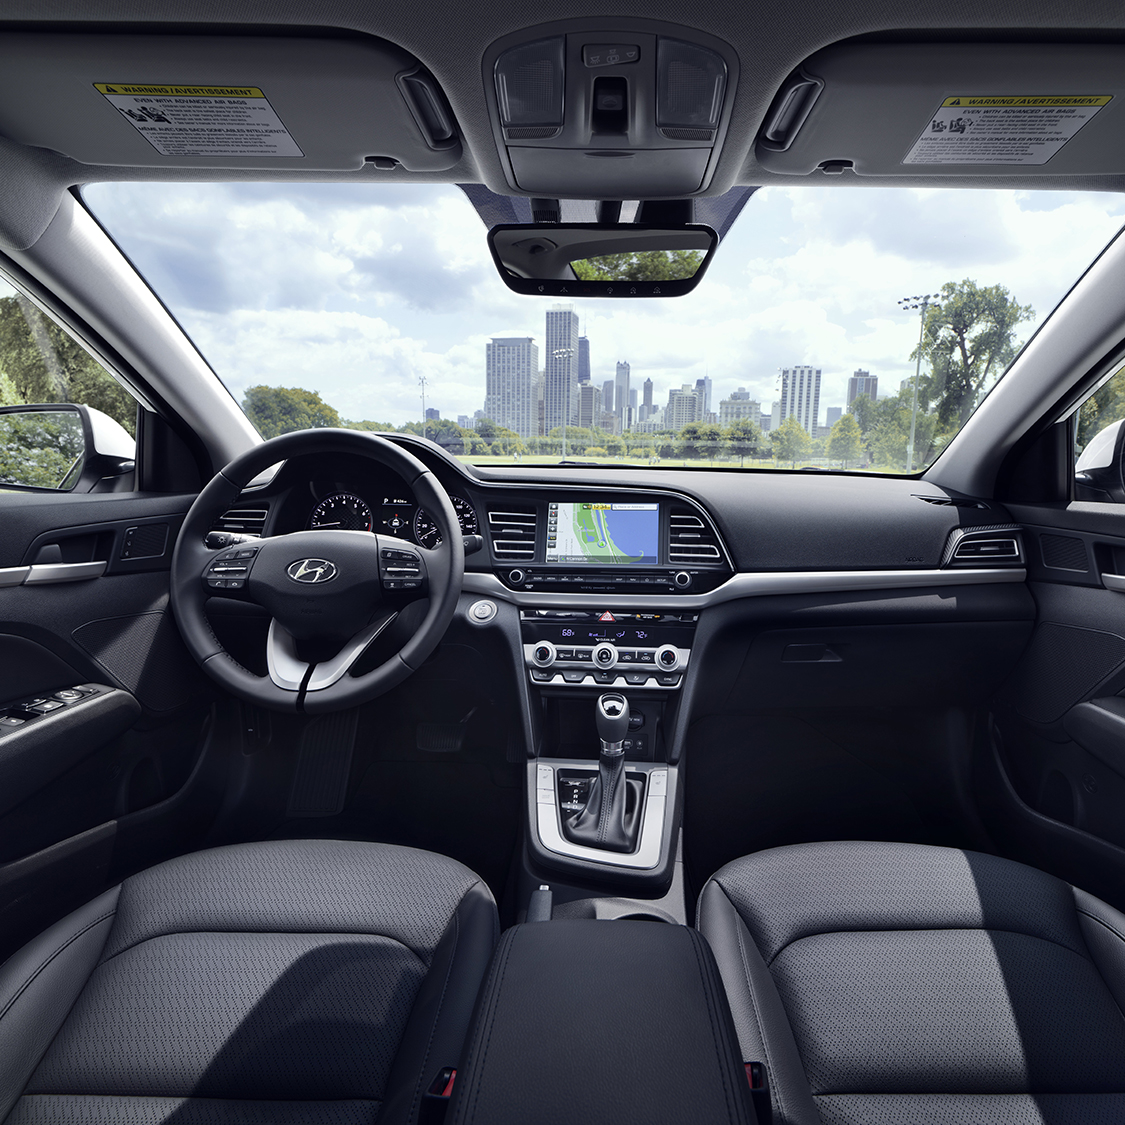 Interior View of the Drivers and Passengers Cabin of the 2019 Hyundai Elantra